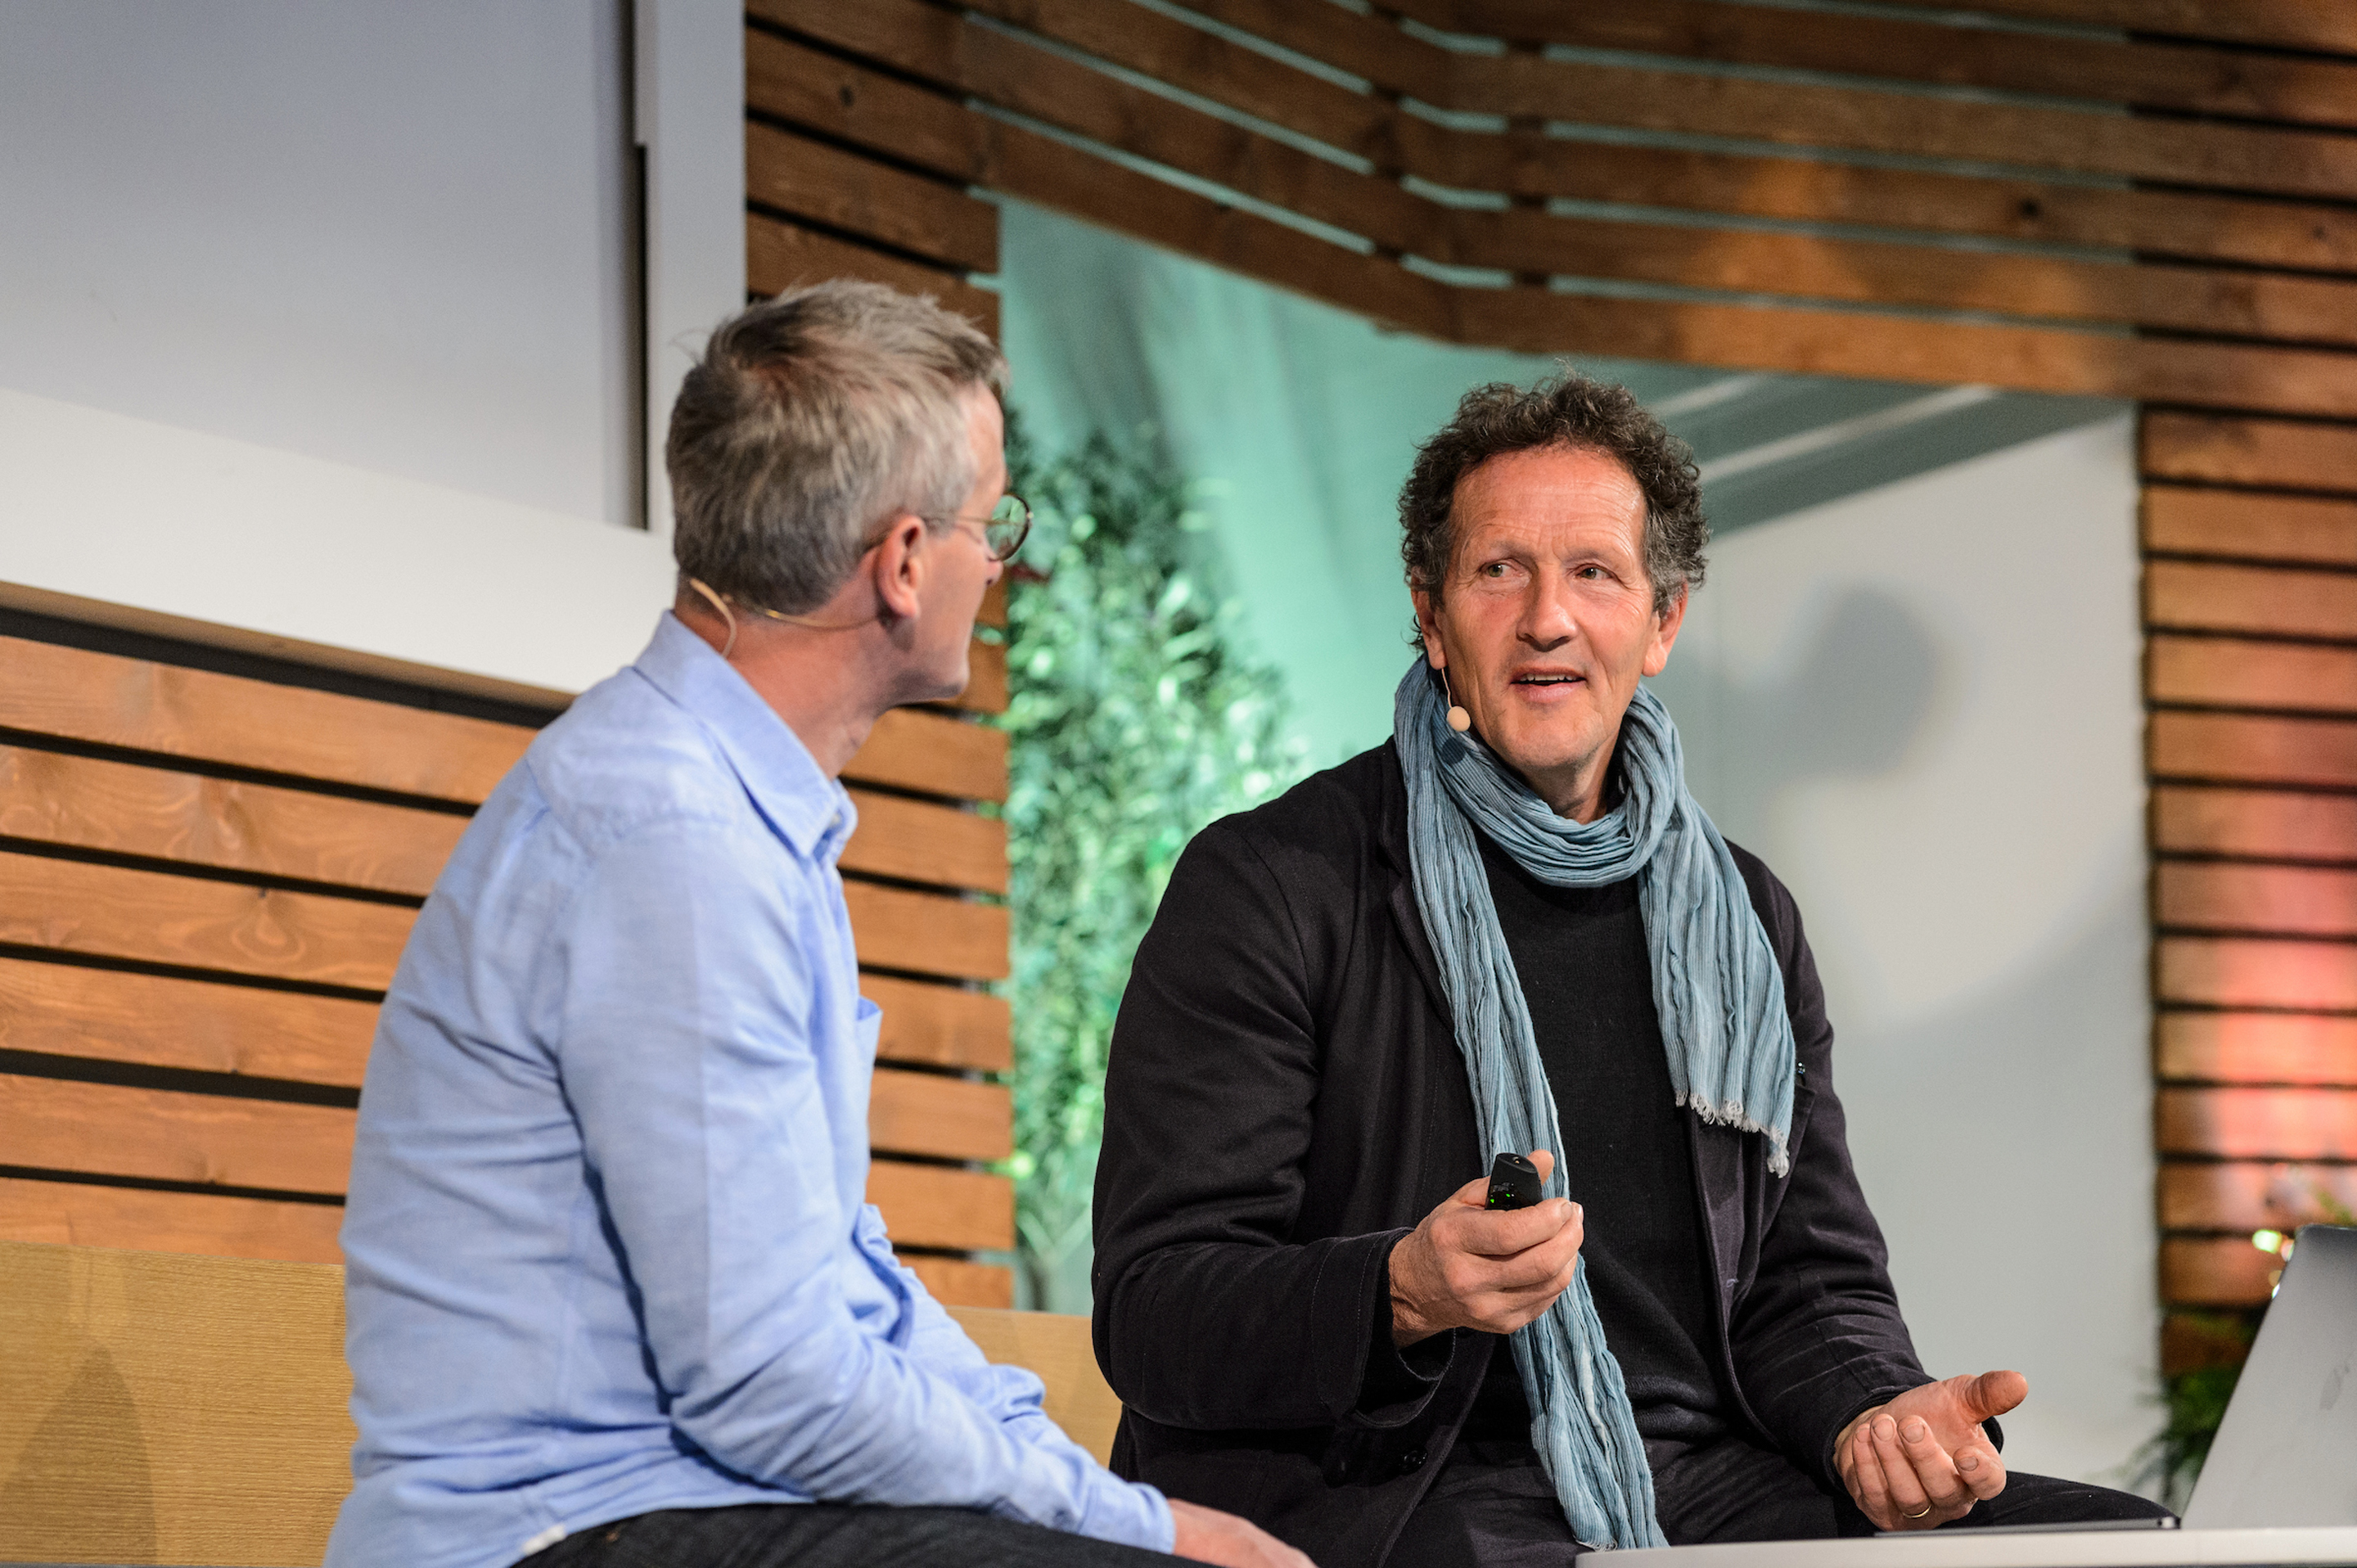 Meet Monty Don at this year's BBC Gardeners' World Live (Jason Ingram/BBC Gardeners' World Live/PA)